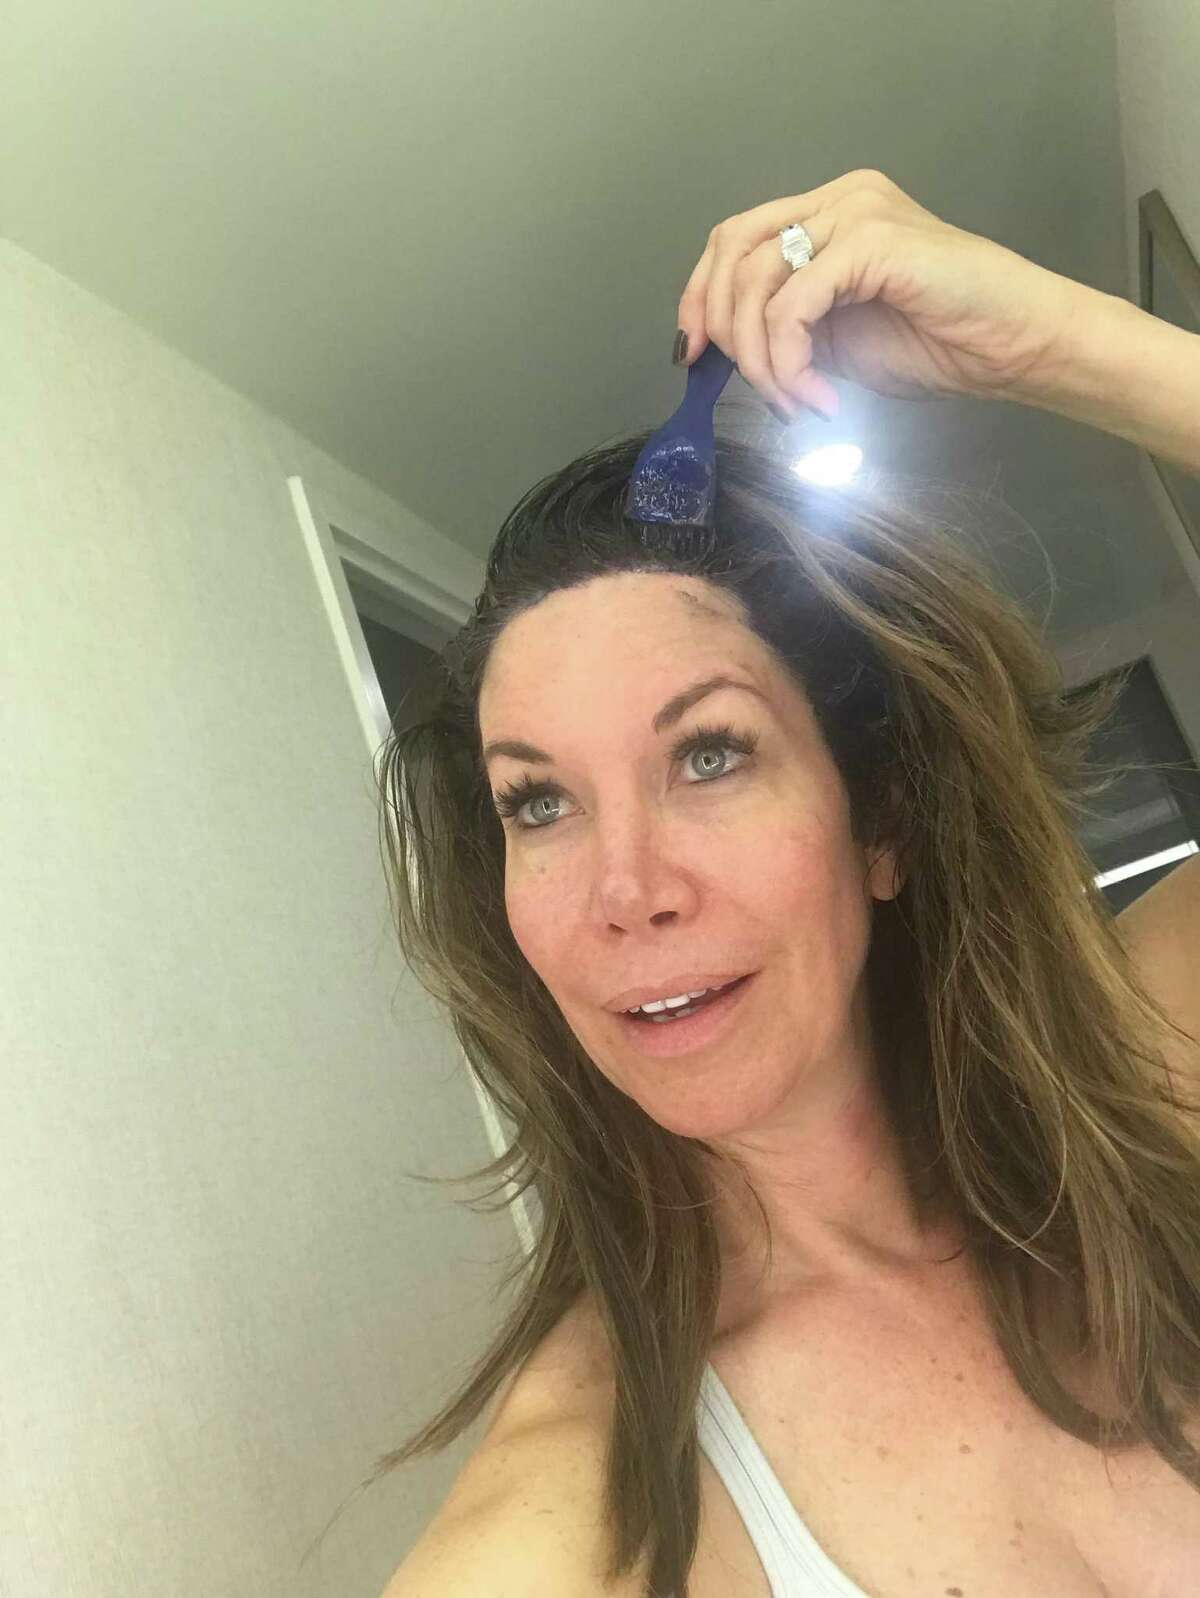 BEFORE: Roseann Rogers, sales manager for Stewart Title and former TV personality, shows how she dyed her roots at at home.